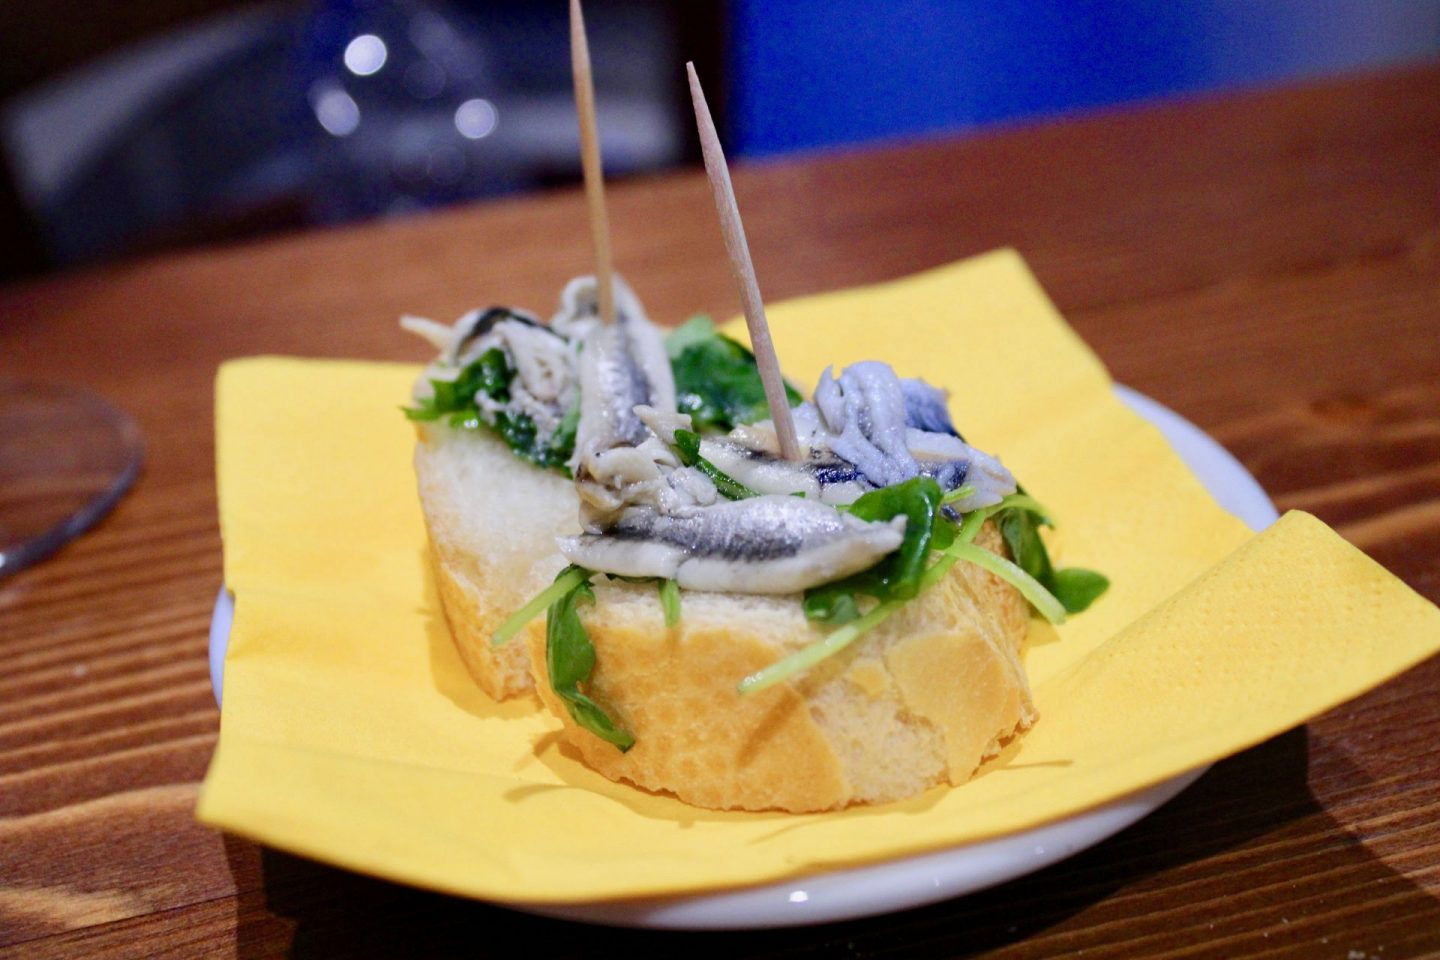 best cicchetti in Venice: bread topped with herring, served on a yellow napkin